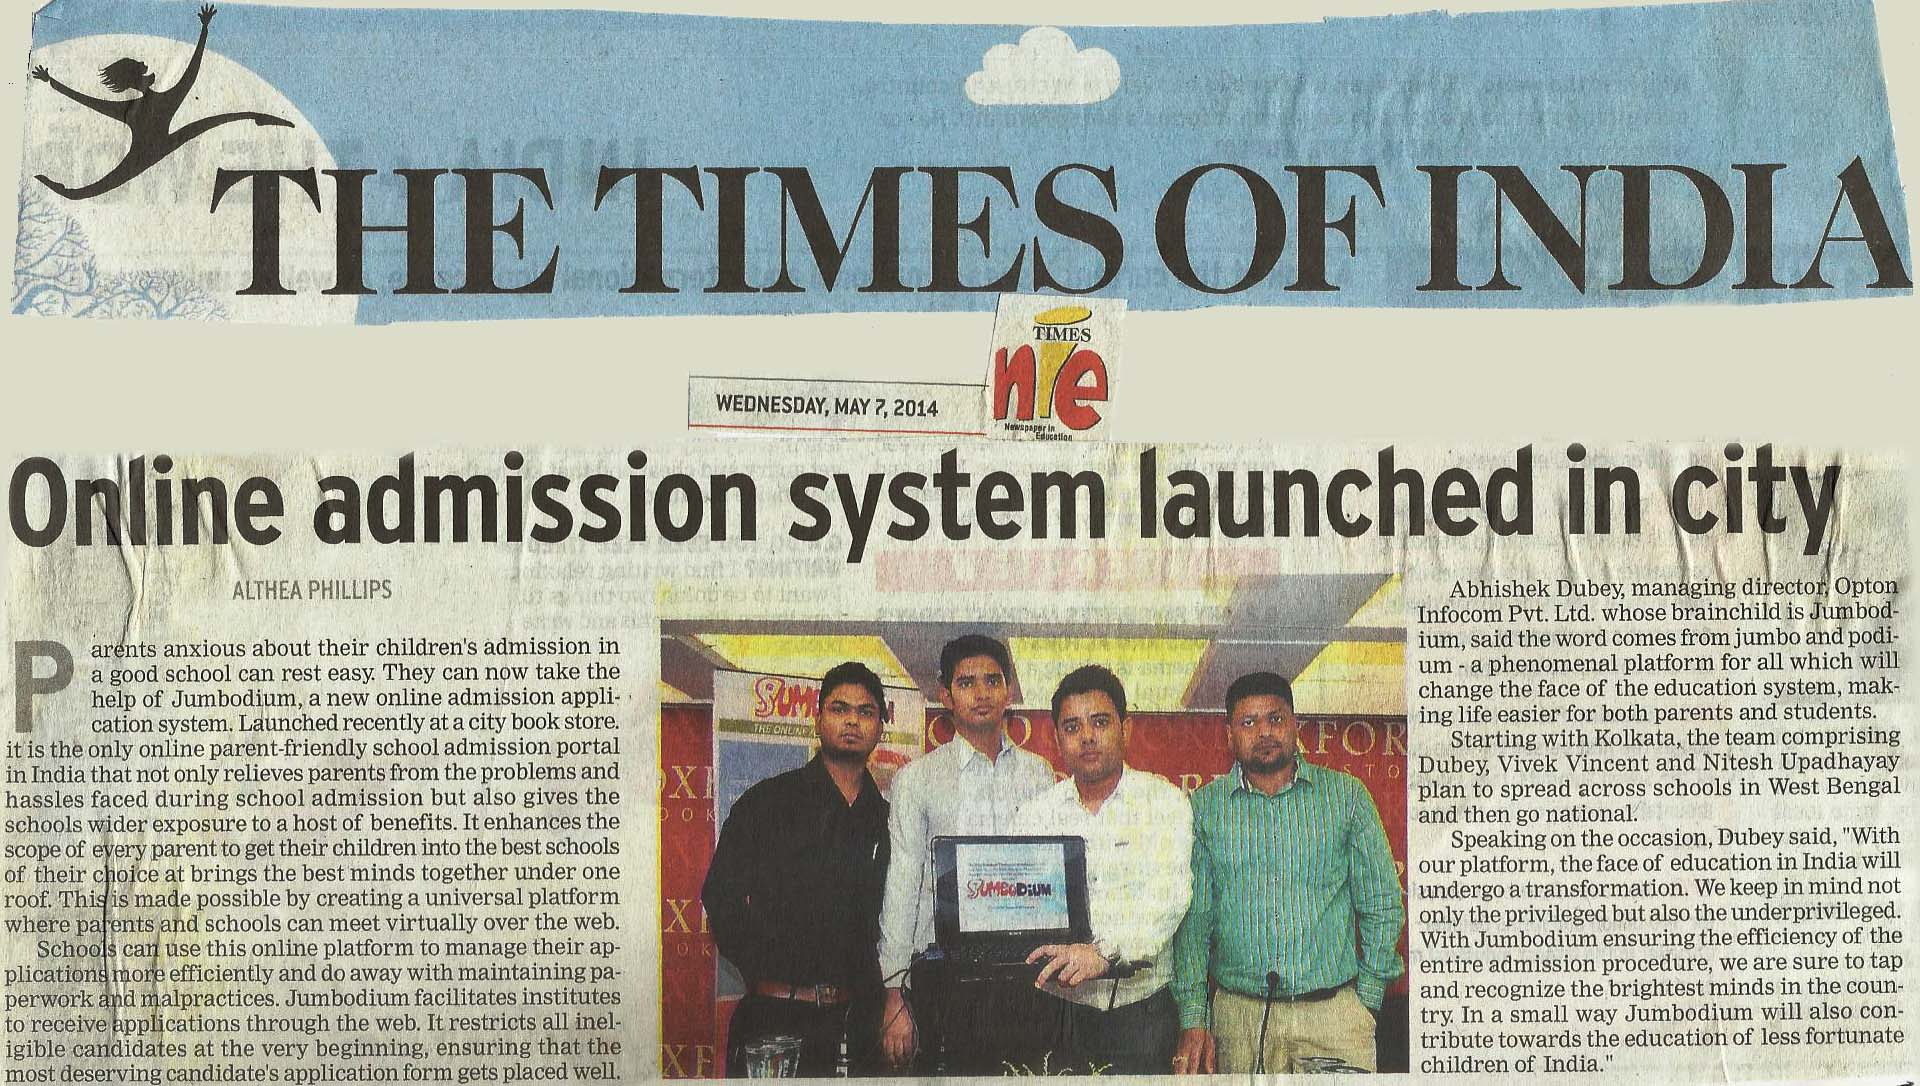 Online admission system launched in city